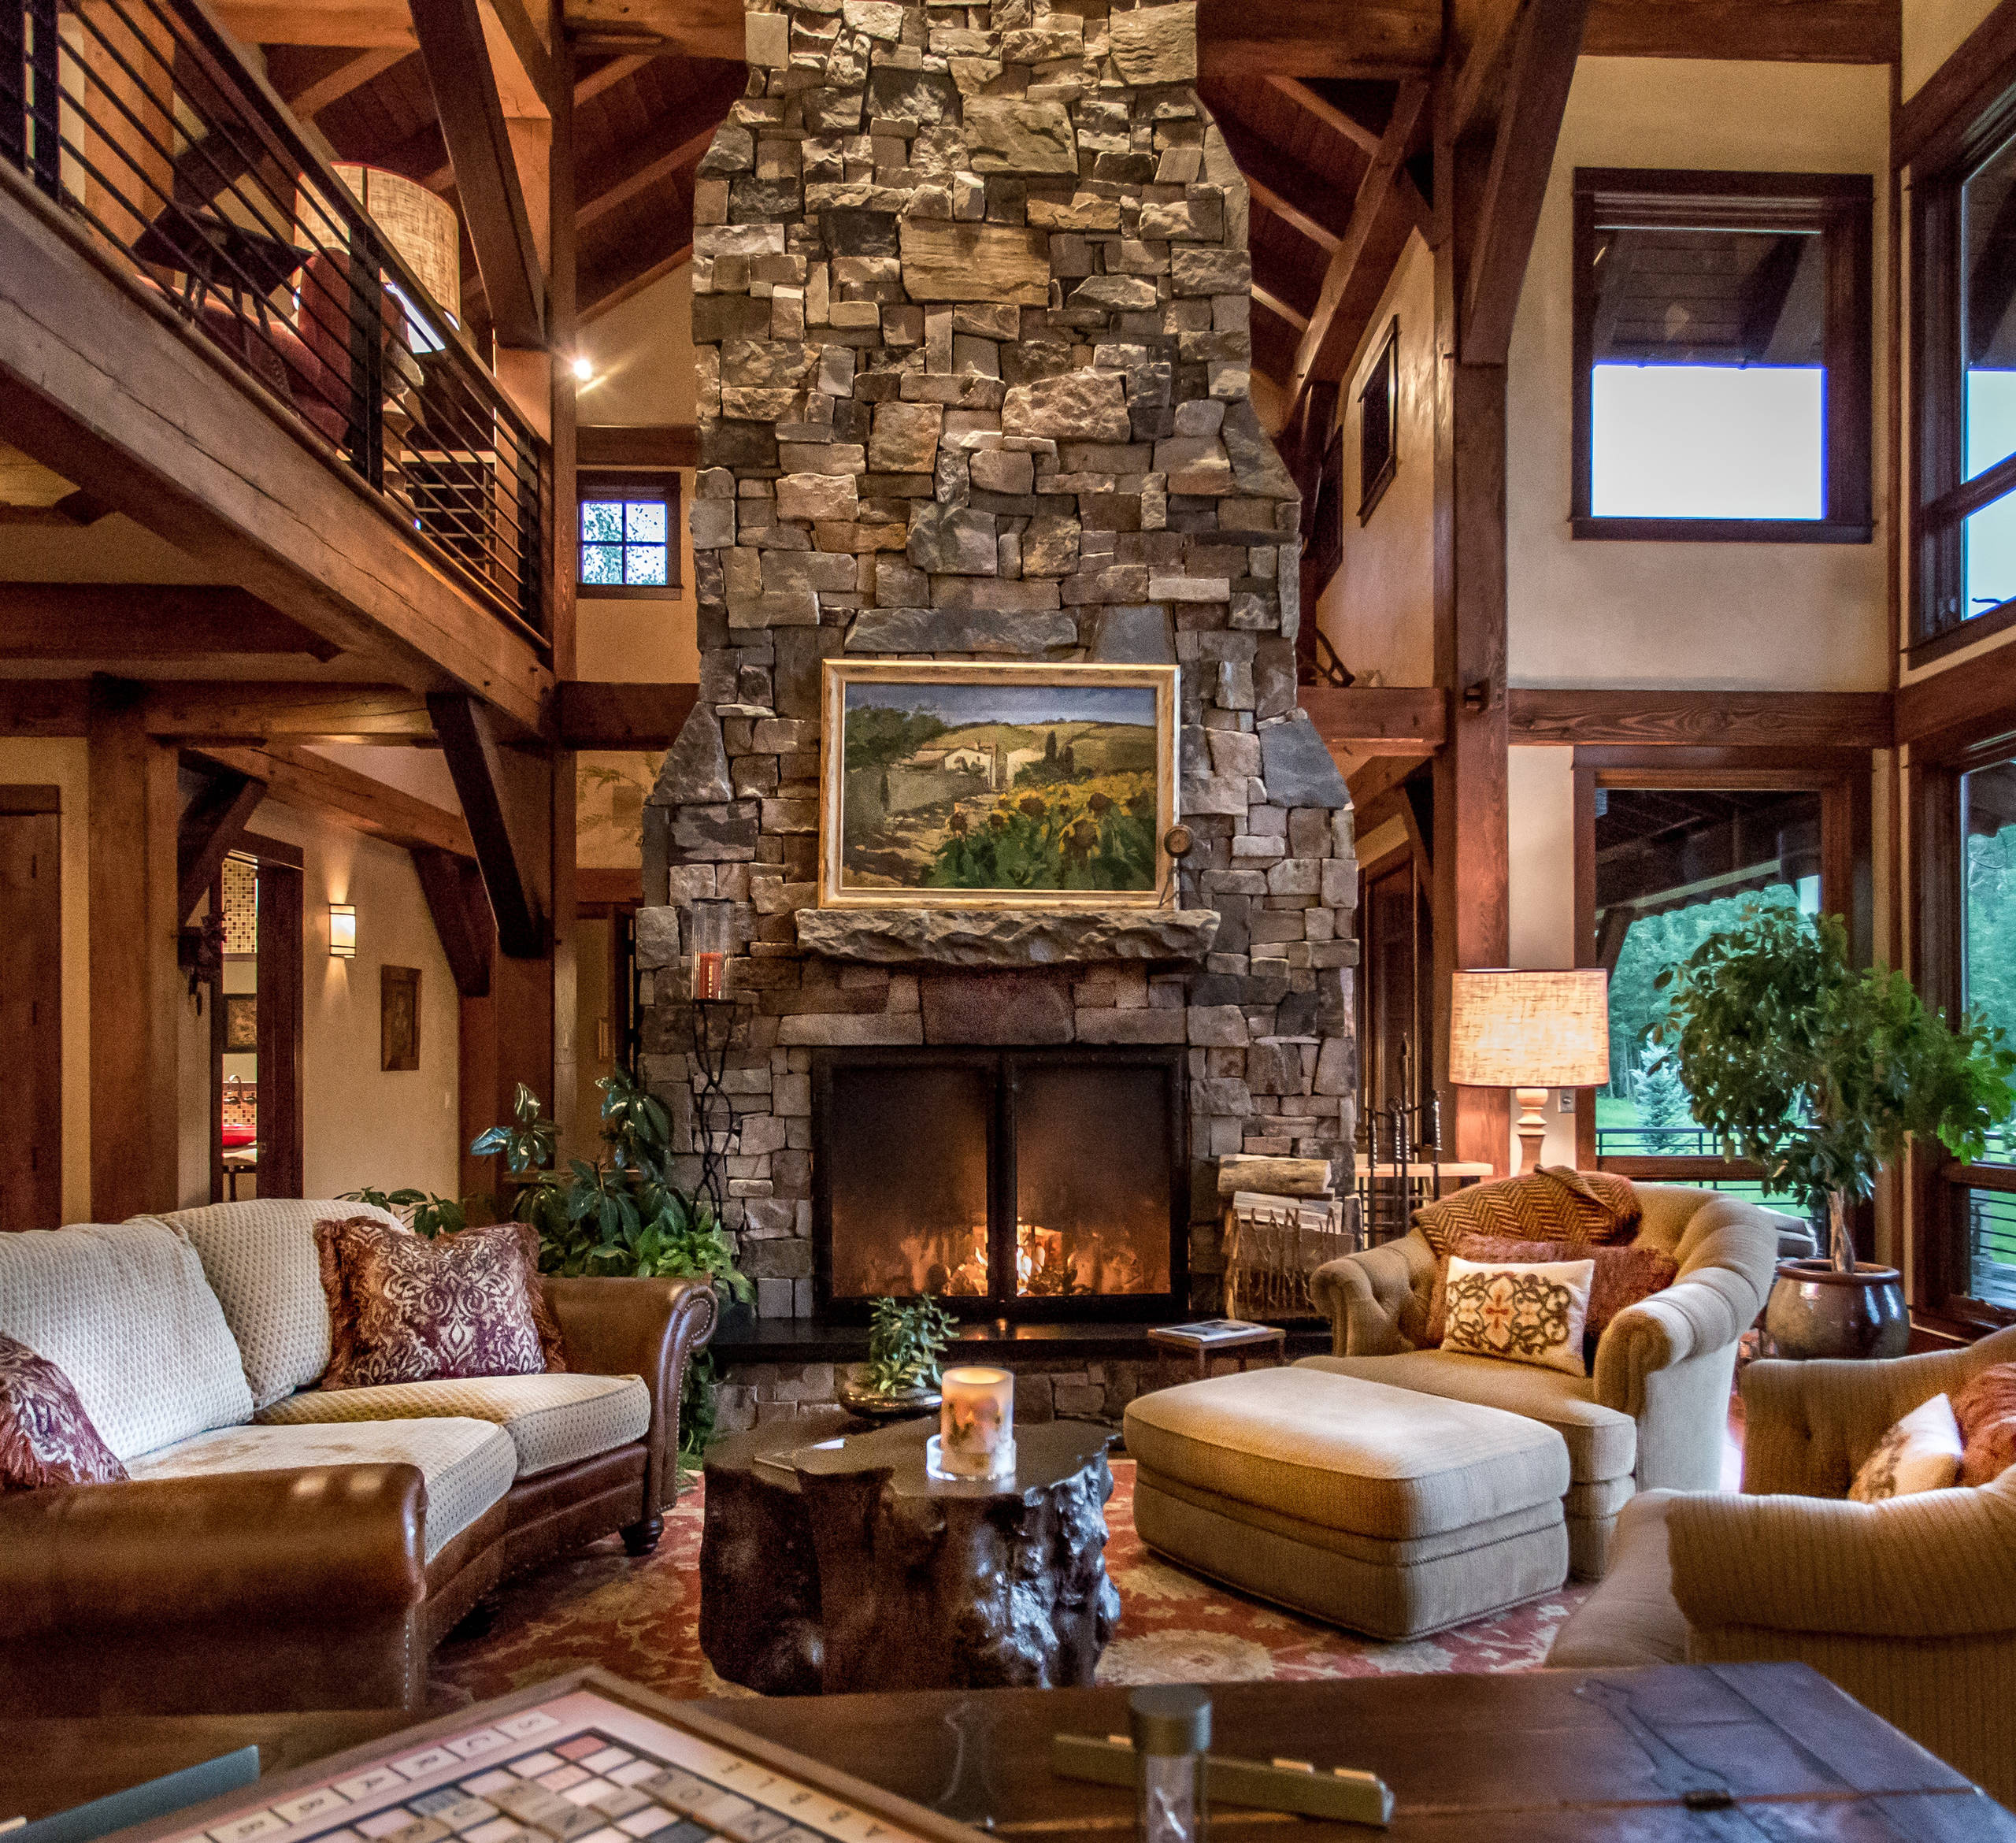 16 Sophisticated Rustic Living Room Designs You Won't Turn ... on Small:szwbf50Ltbw= Living Room Decor Ideas  id=77002